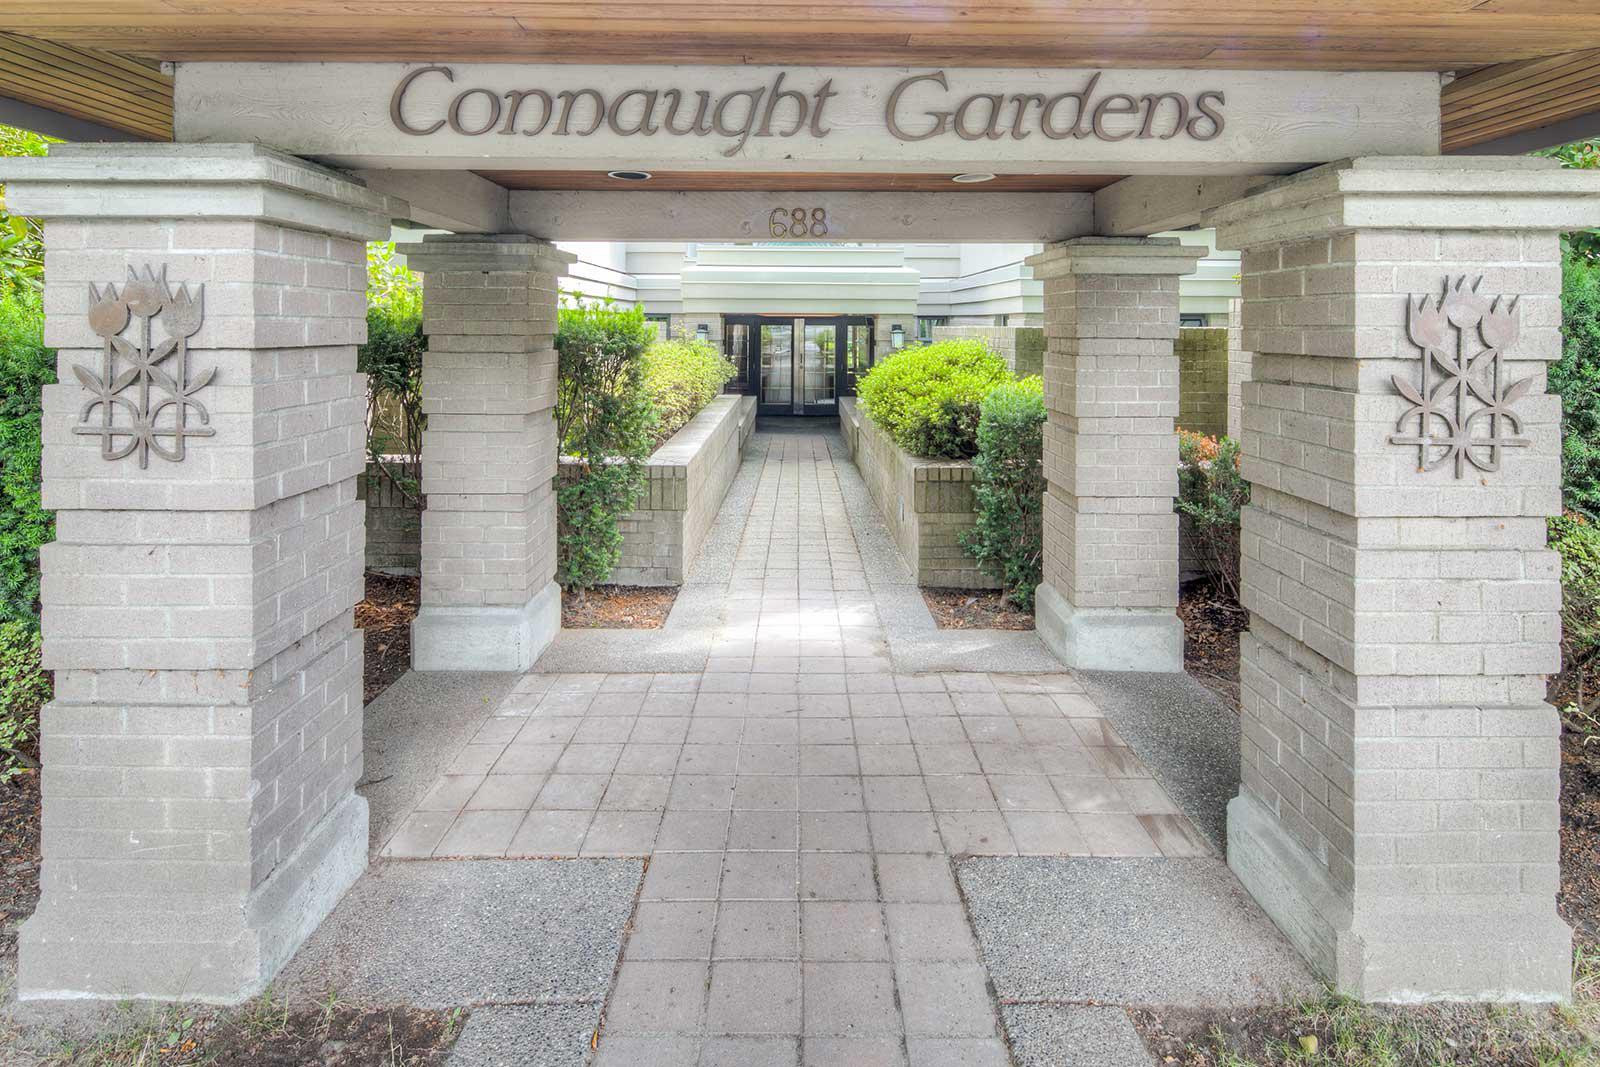 Connaught Gardens at 628 W 12th Ave, Vancouver 1